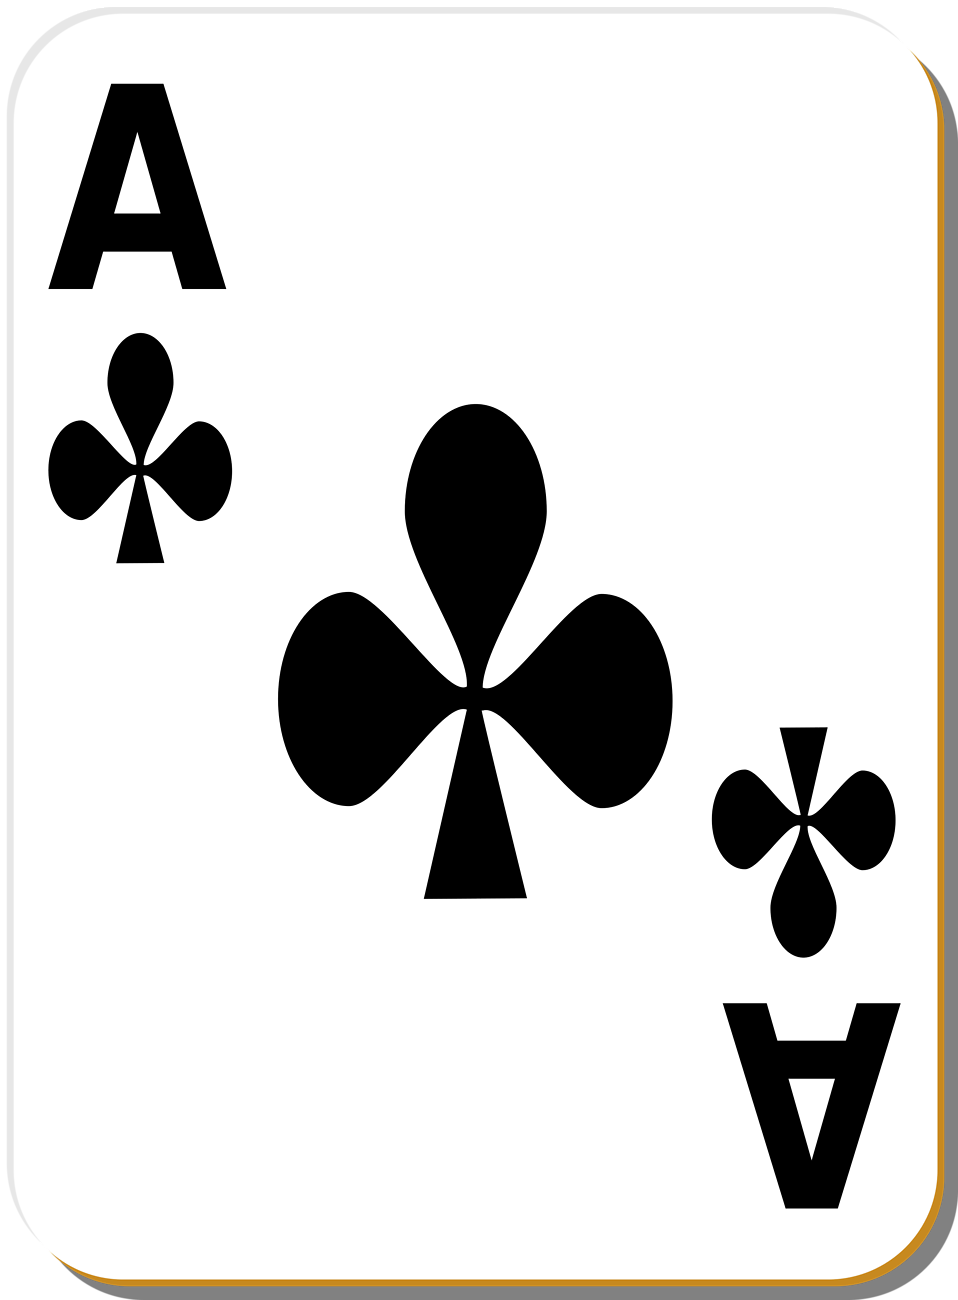 collection of playing. Cards clipart transparent background